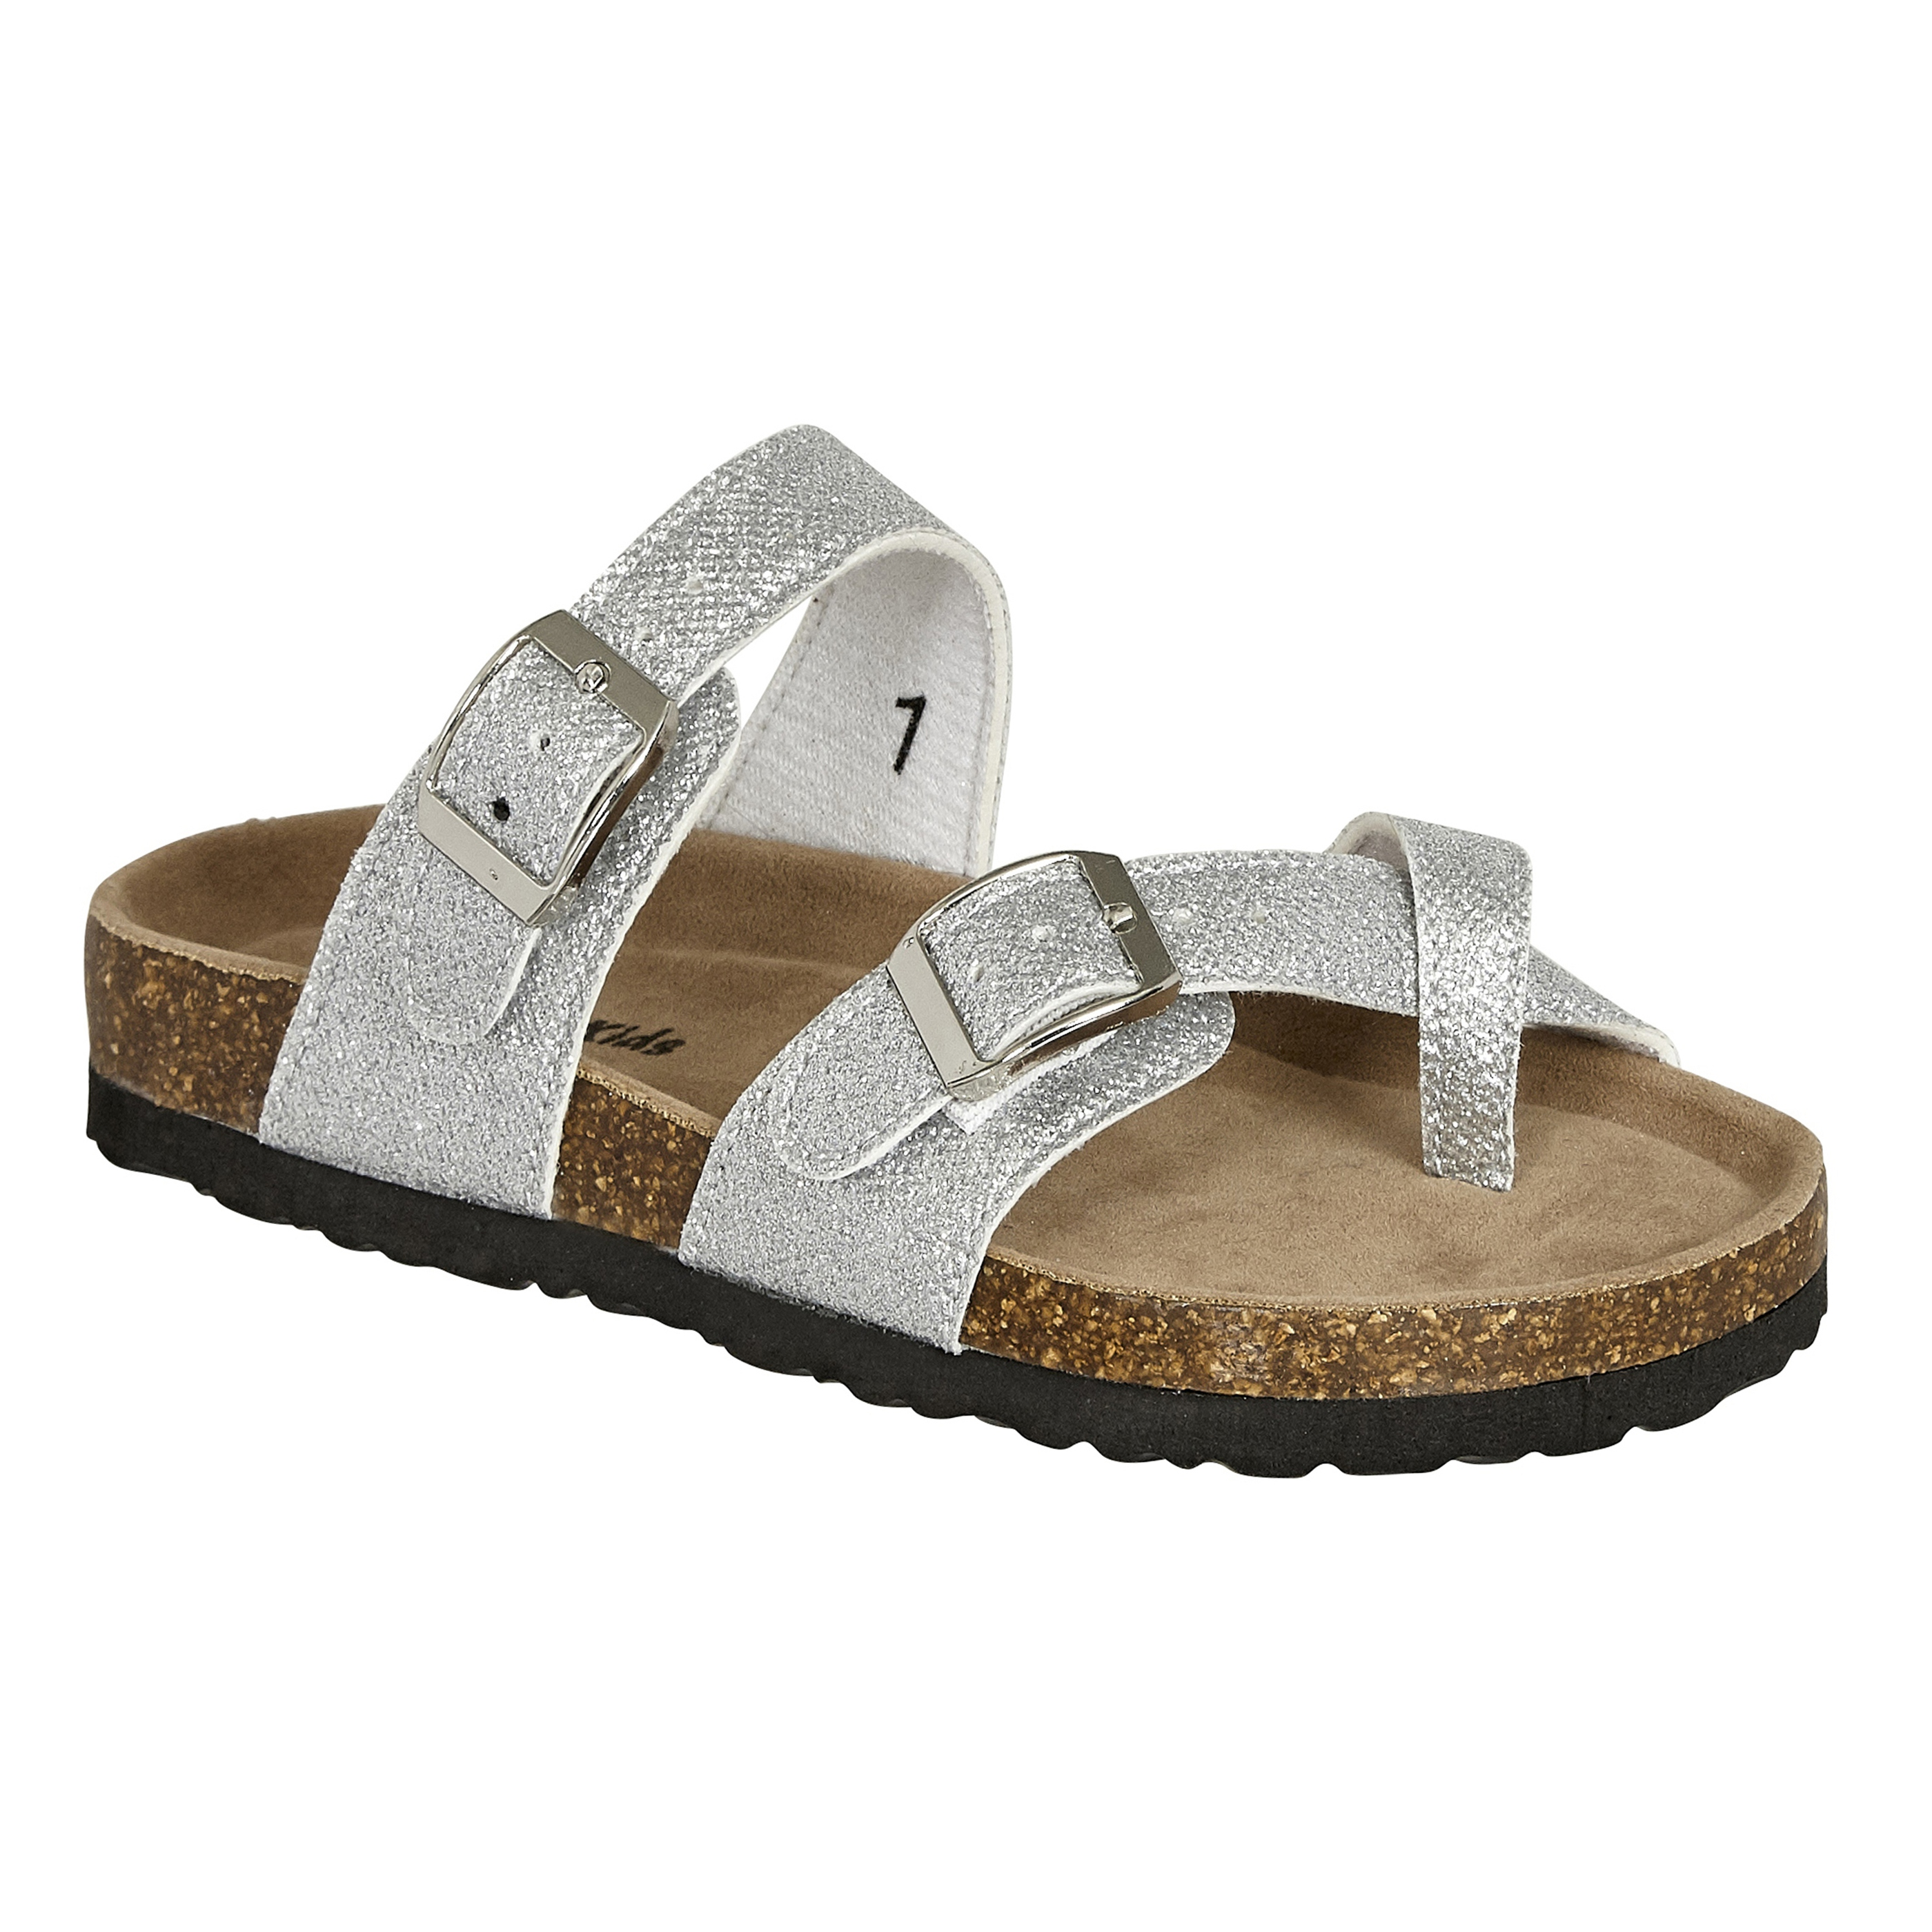 f536db1e567b 41326 - BORK-64. Sandals by Outwoods Kids